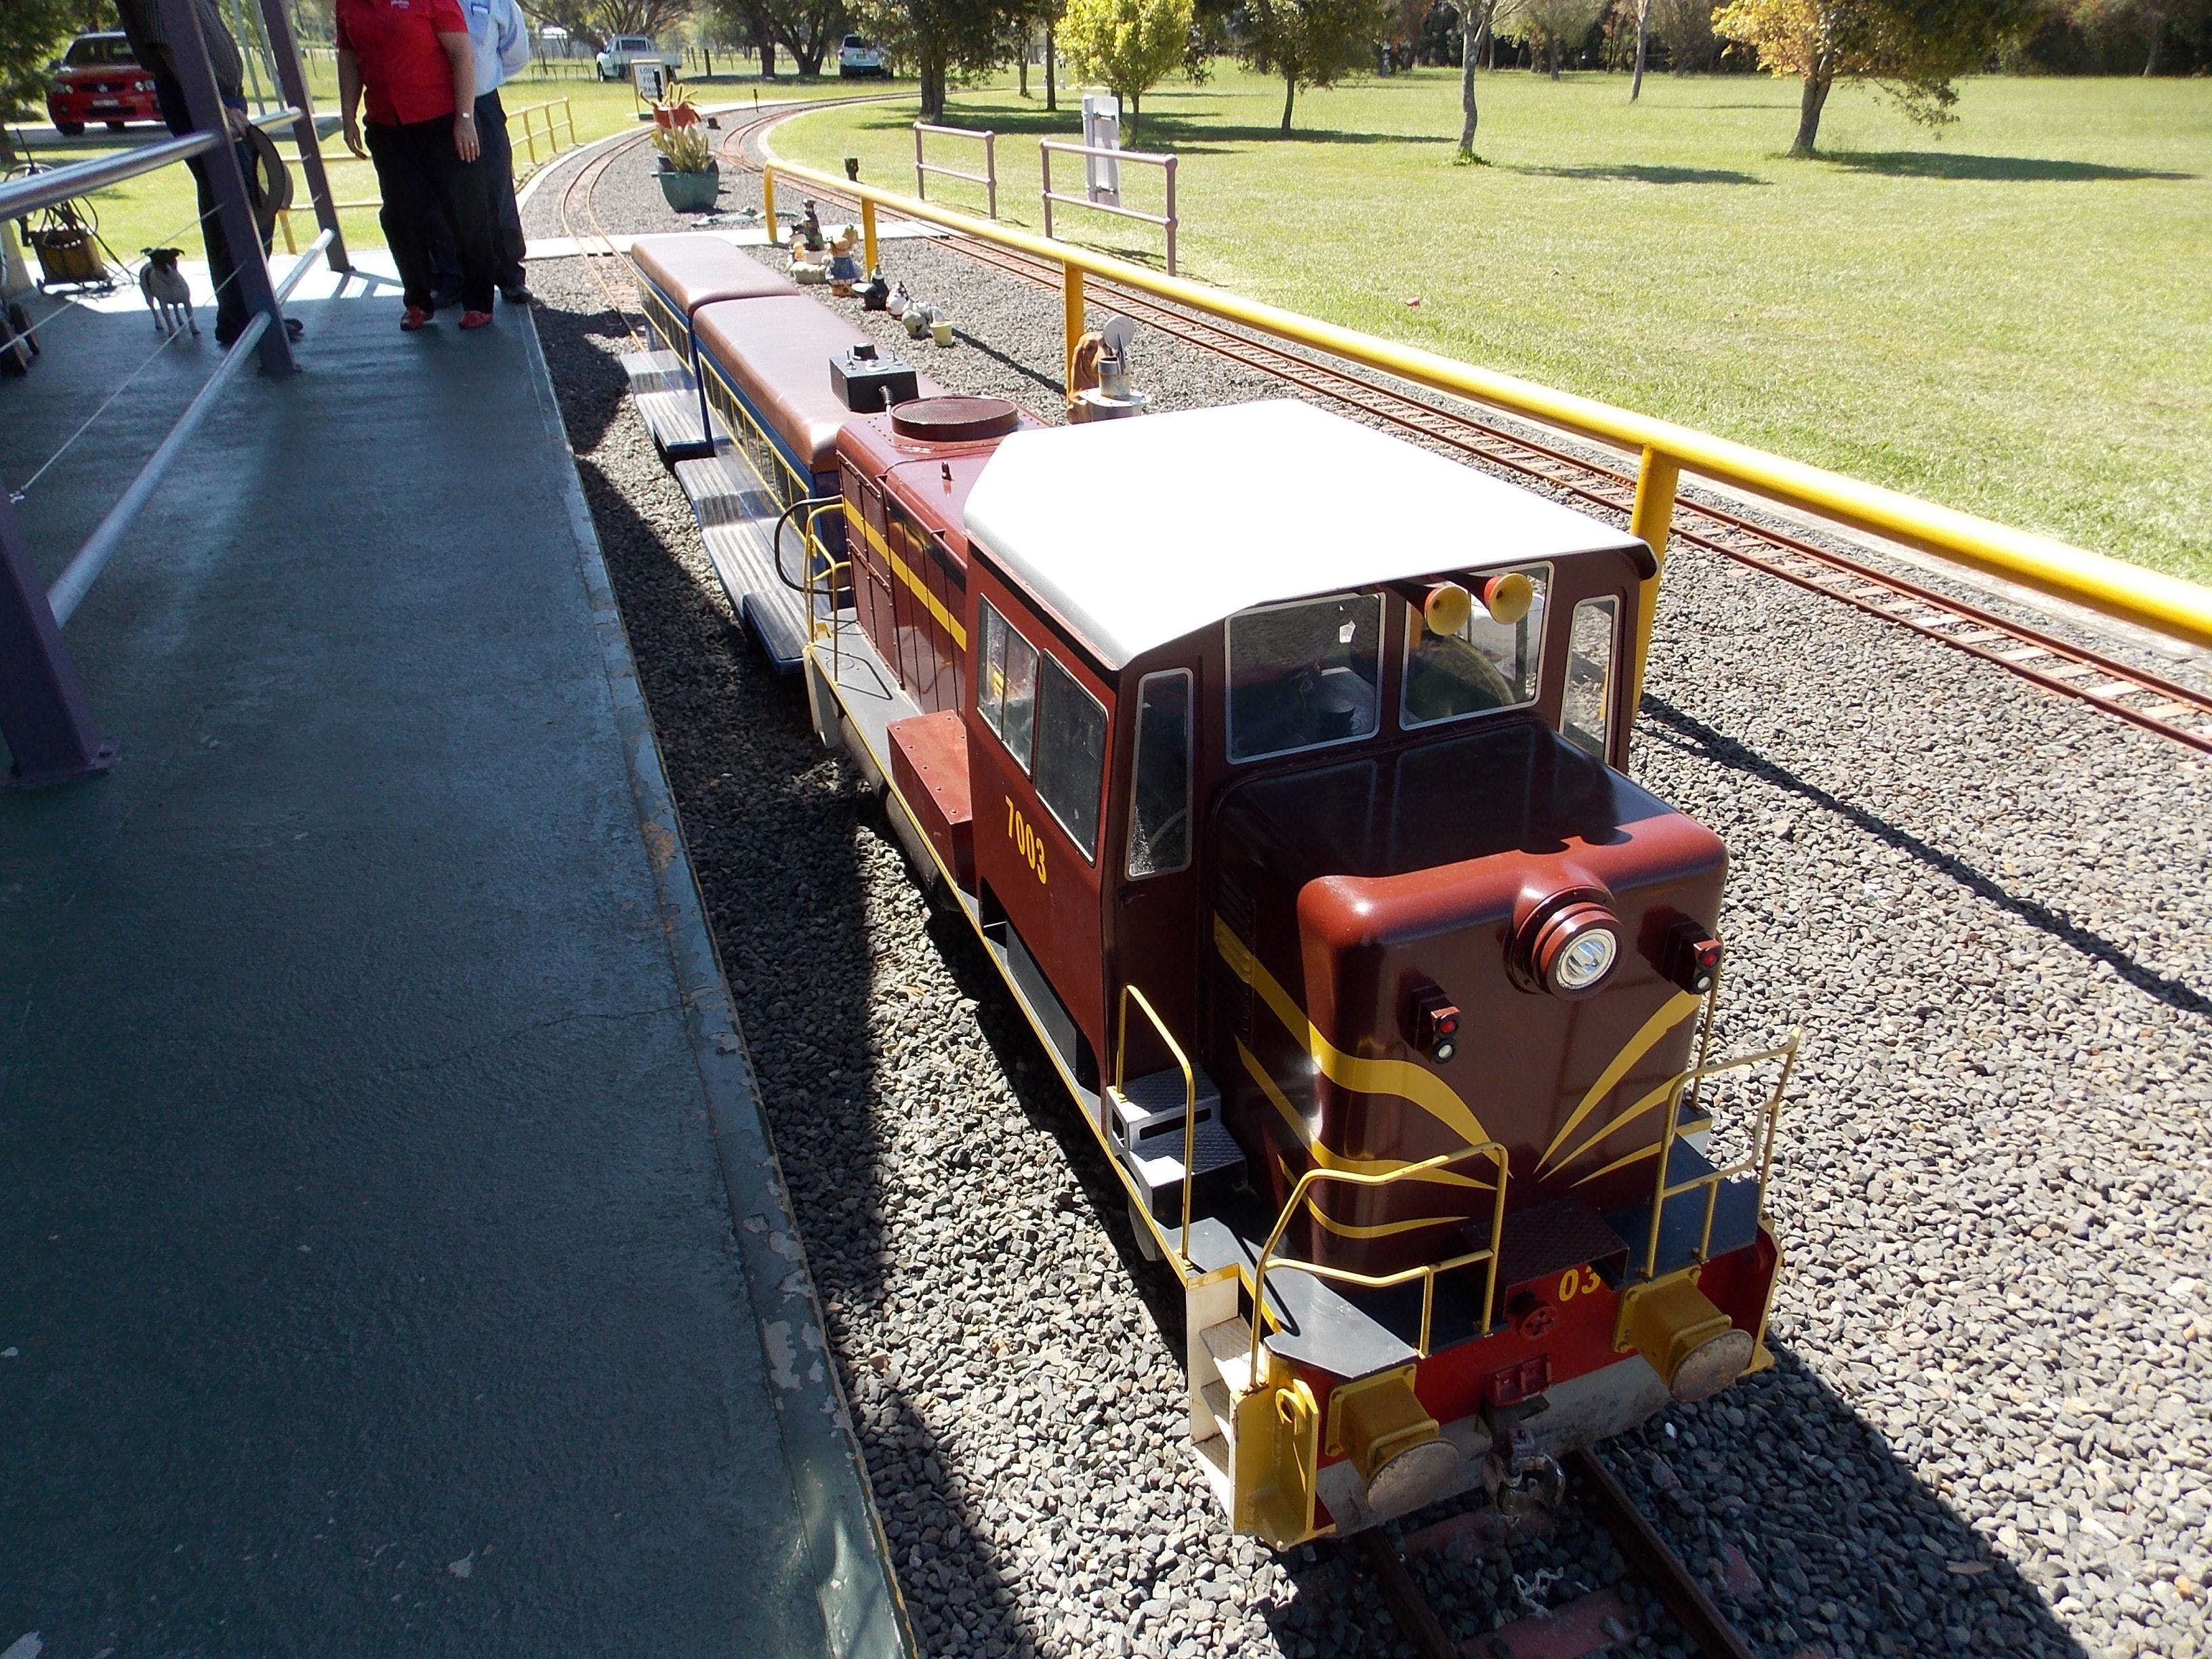 Penwood Miniature Railway - Attractions Sydney